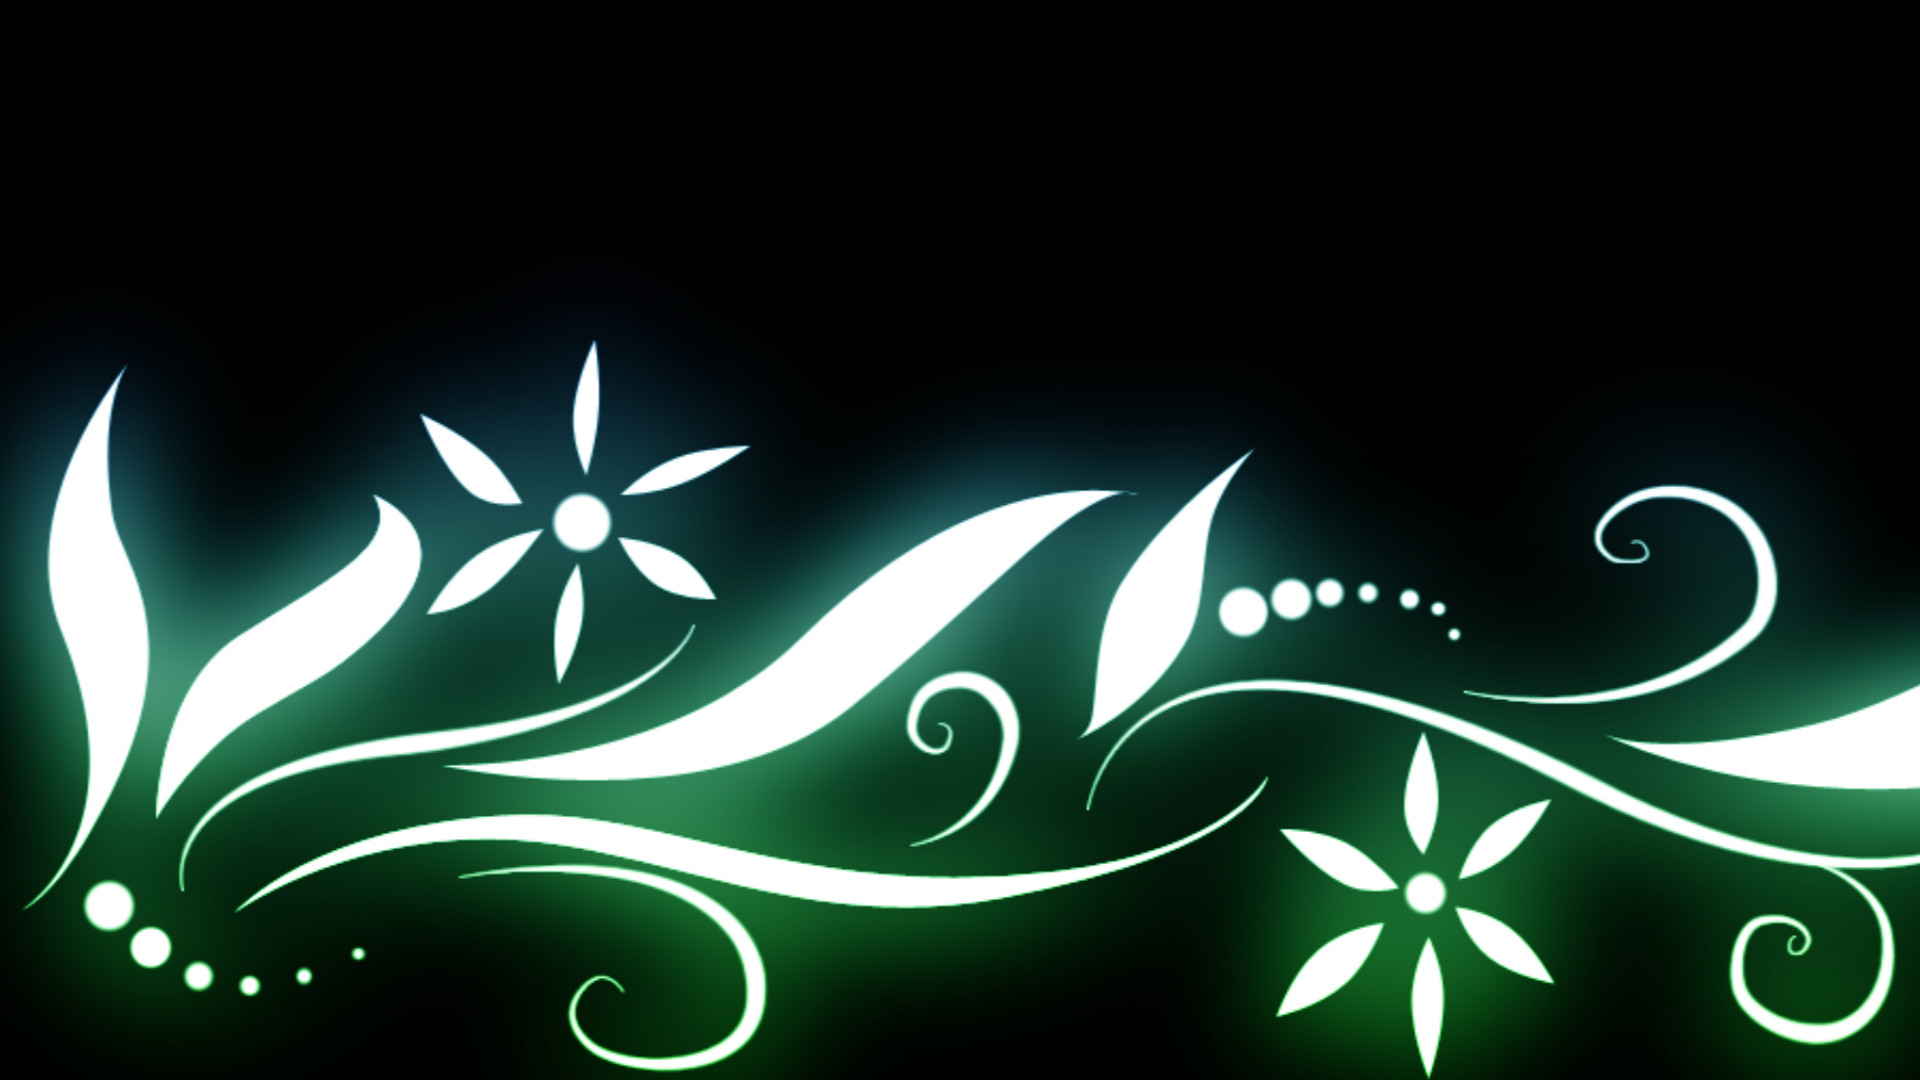 … Floral Glowy Blue Green Wallpaper by DefectiveDre